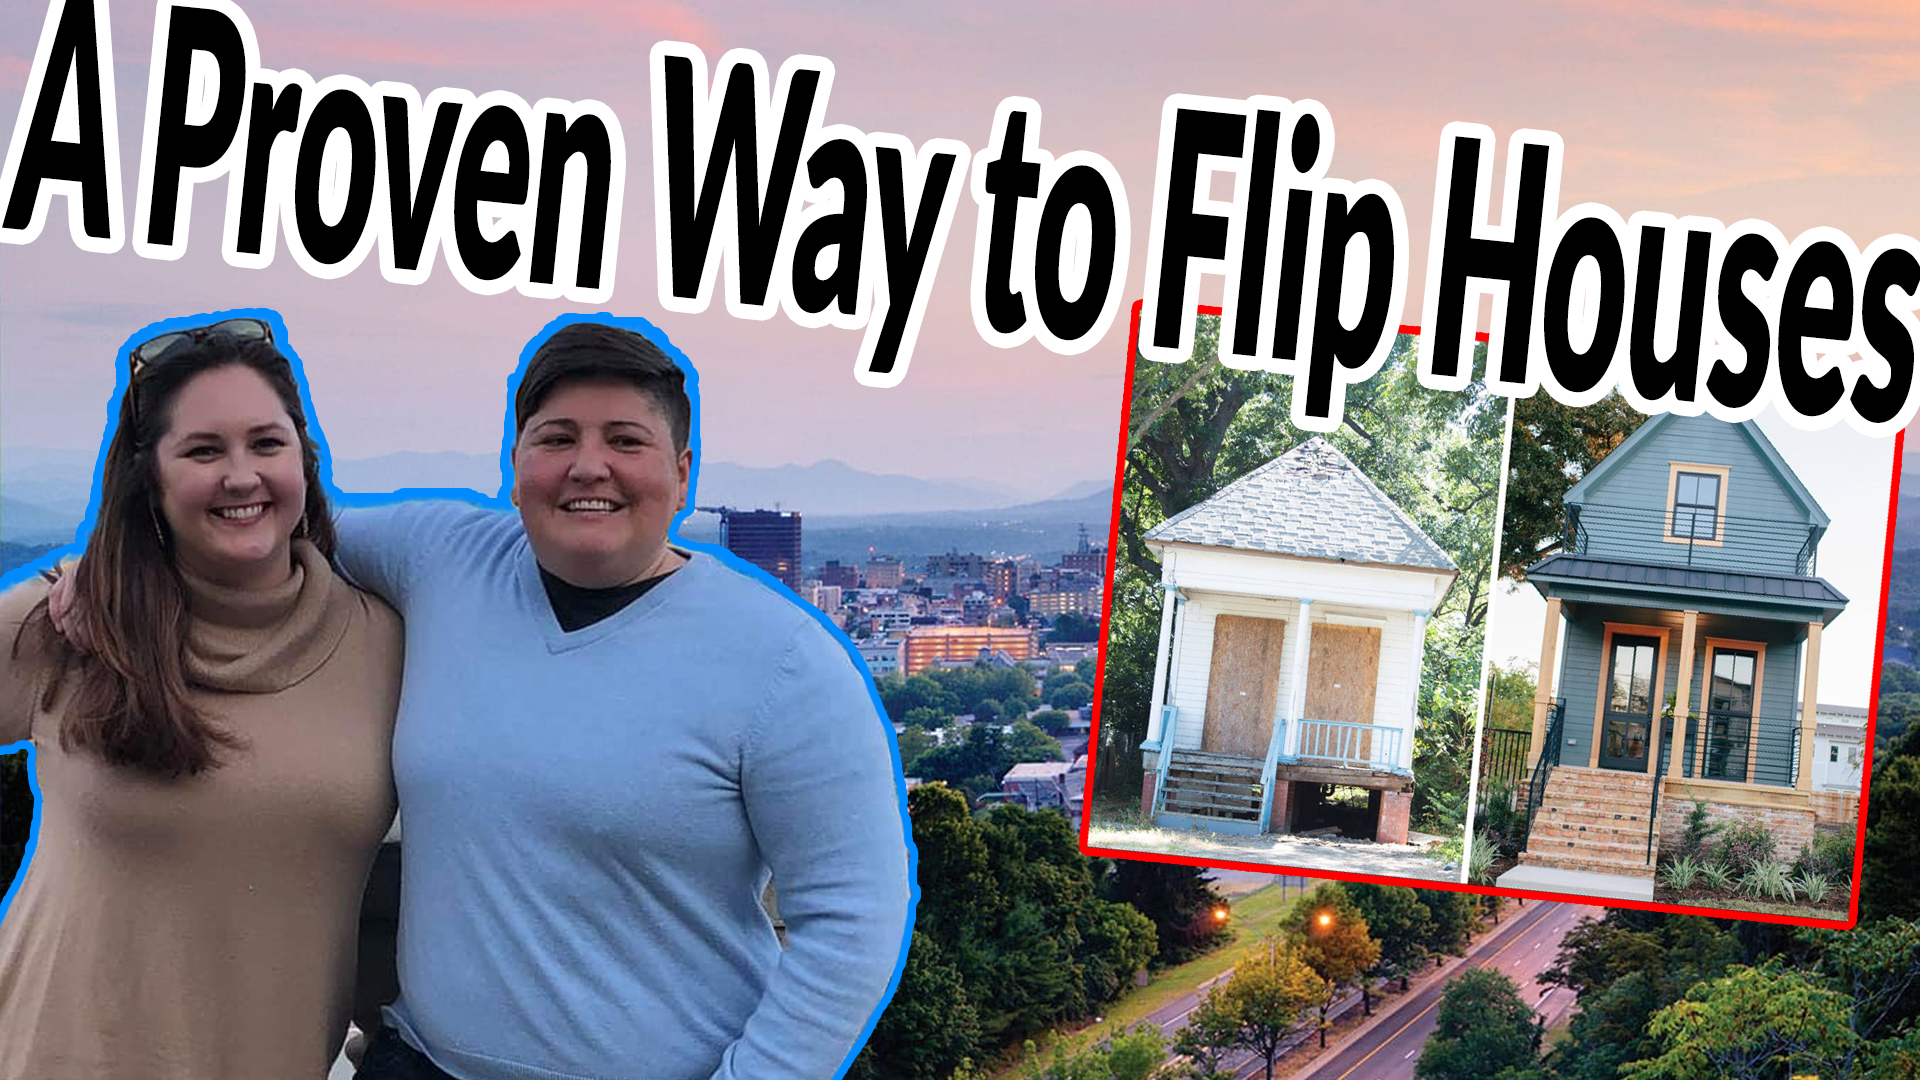 A PROVEN SYSTEM FOR FLIPPING HOUSES | AREN 127